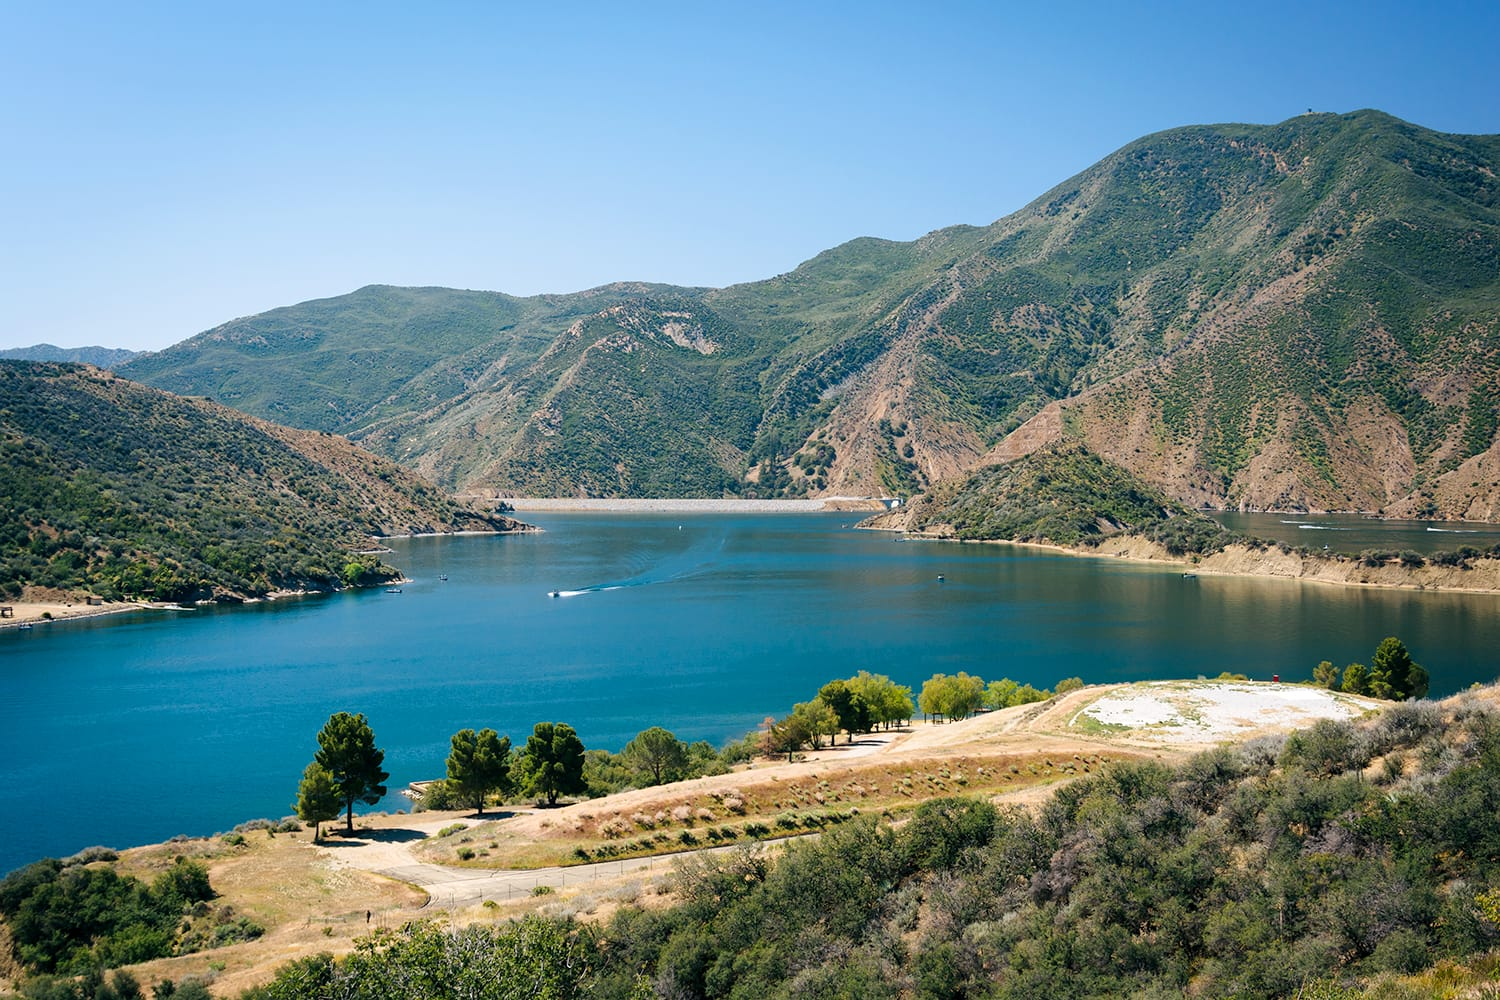 View of Pyramid Lake, in Angeles National Forest, California USA